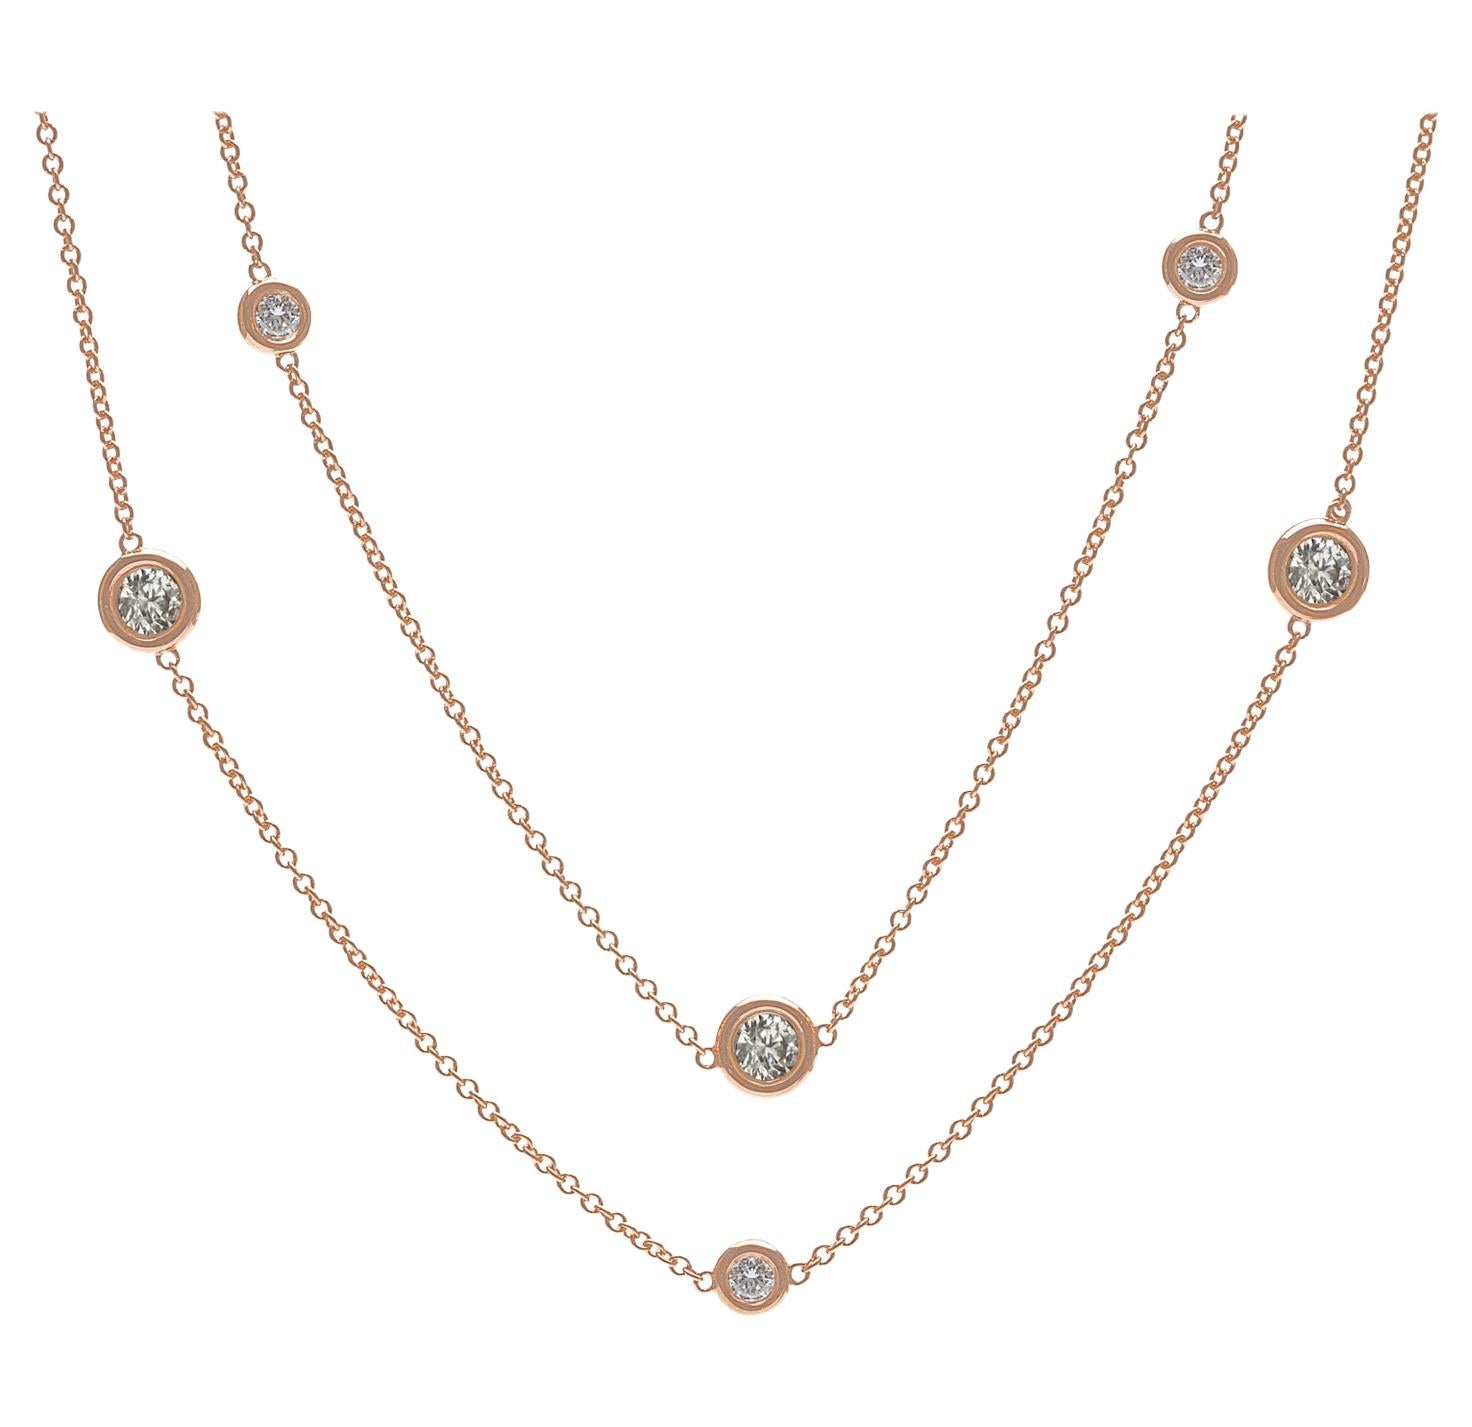 Diamond and Rose Gold Long Chain Necklace